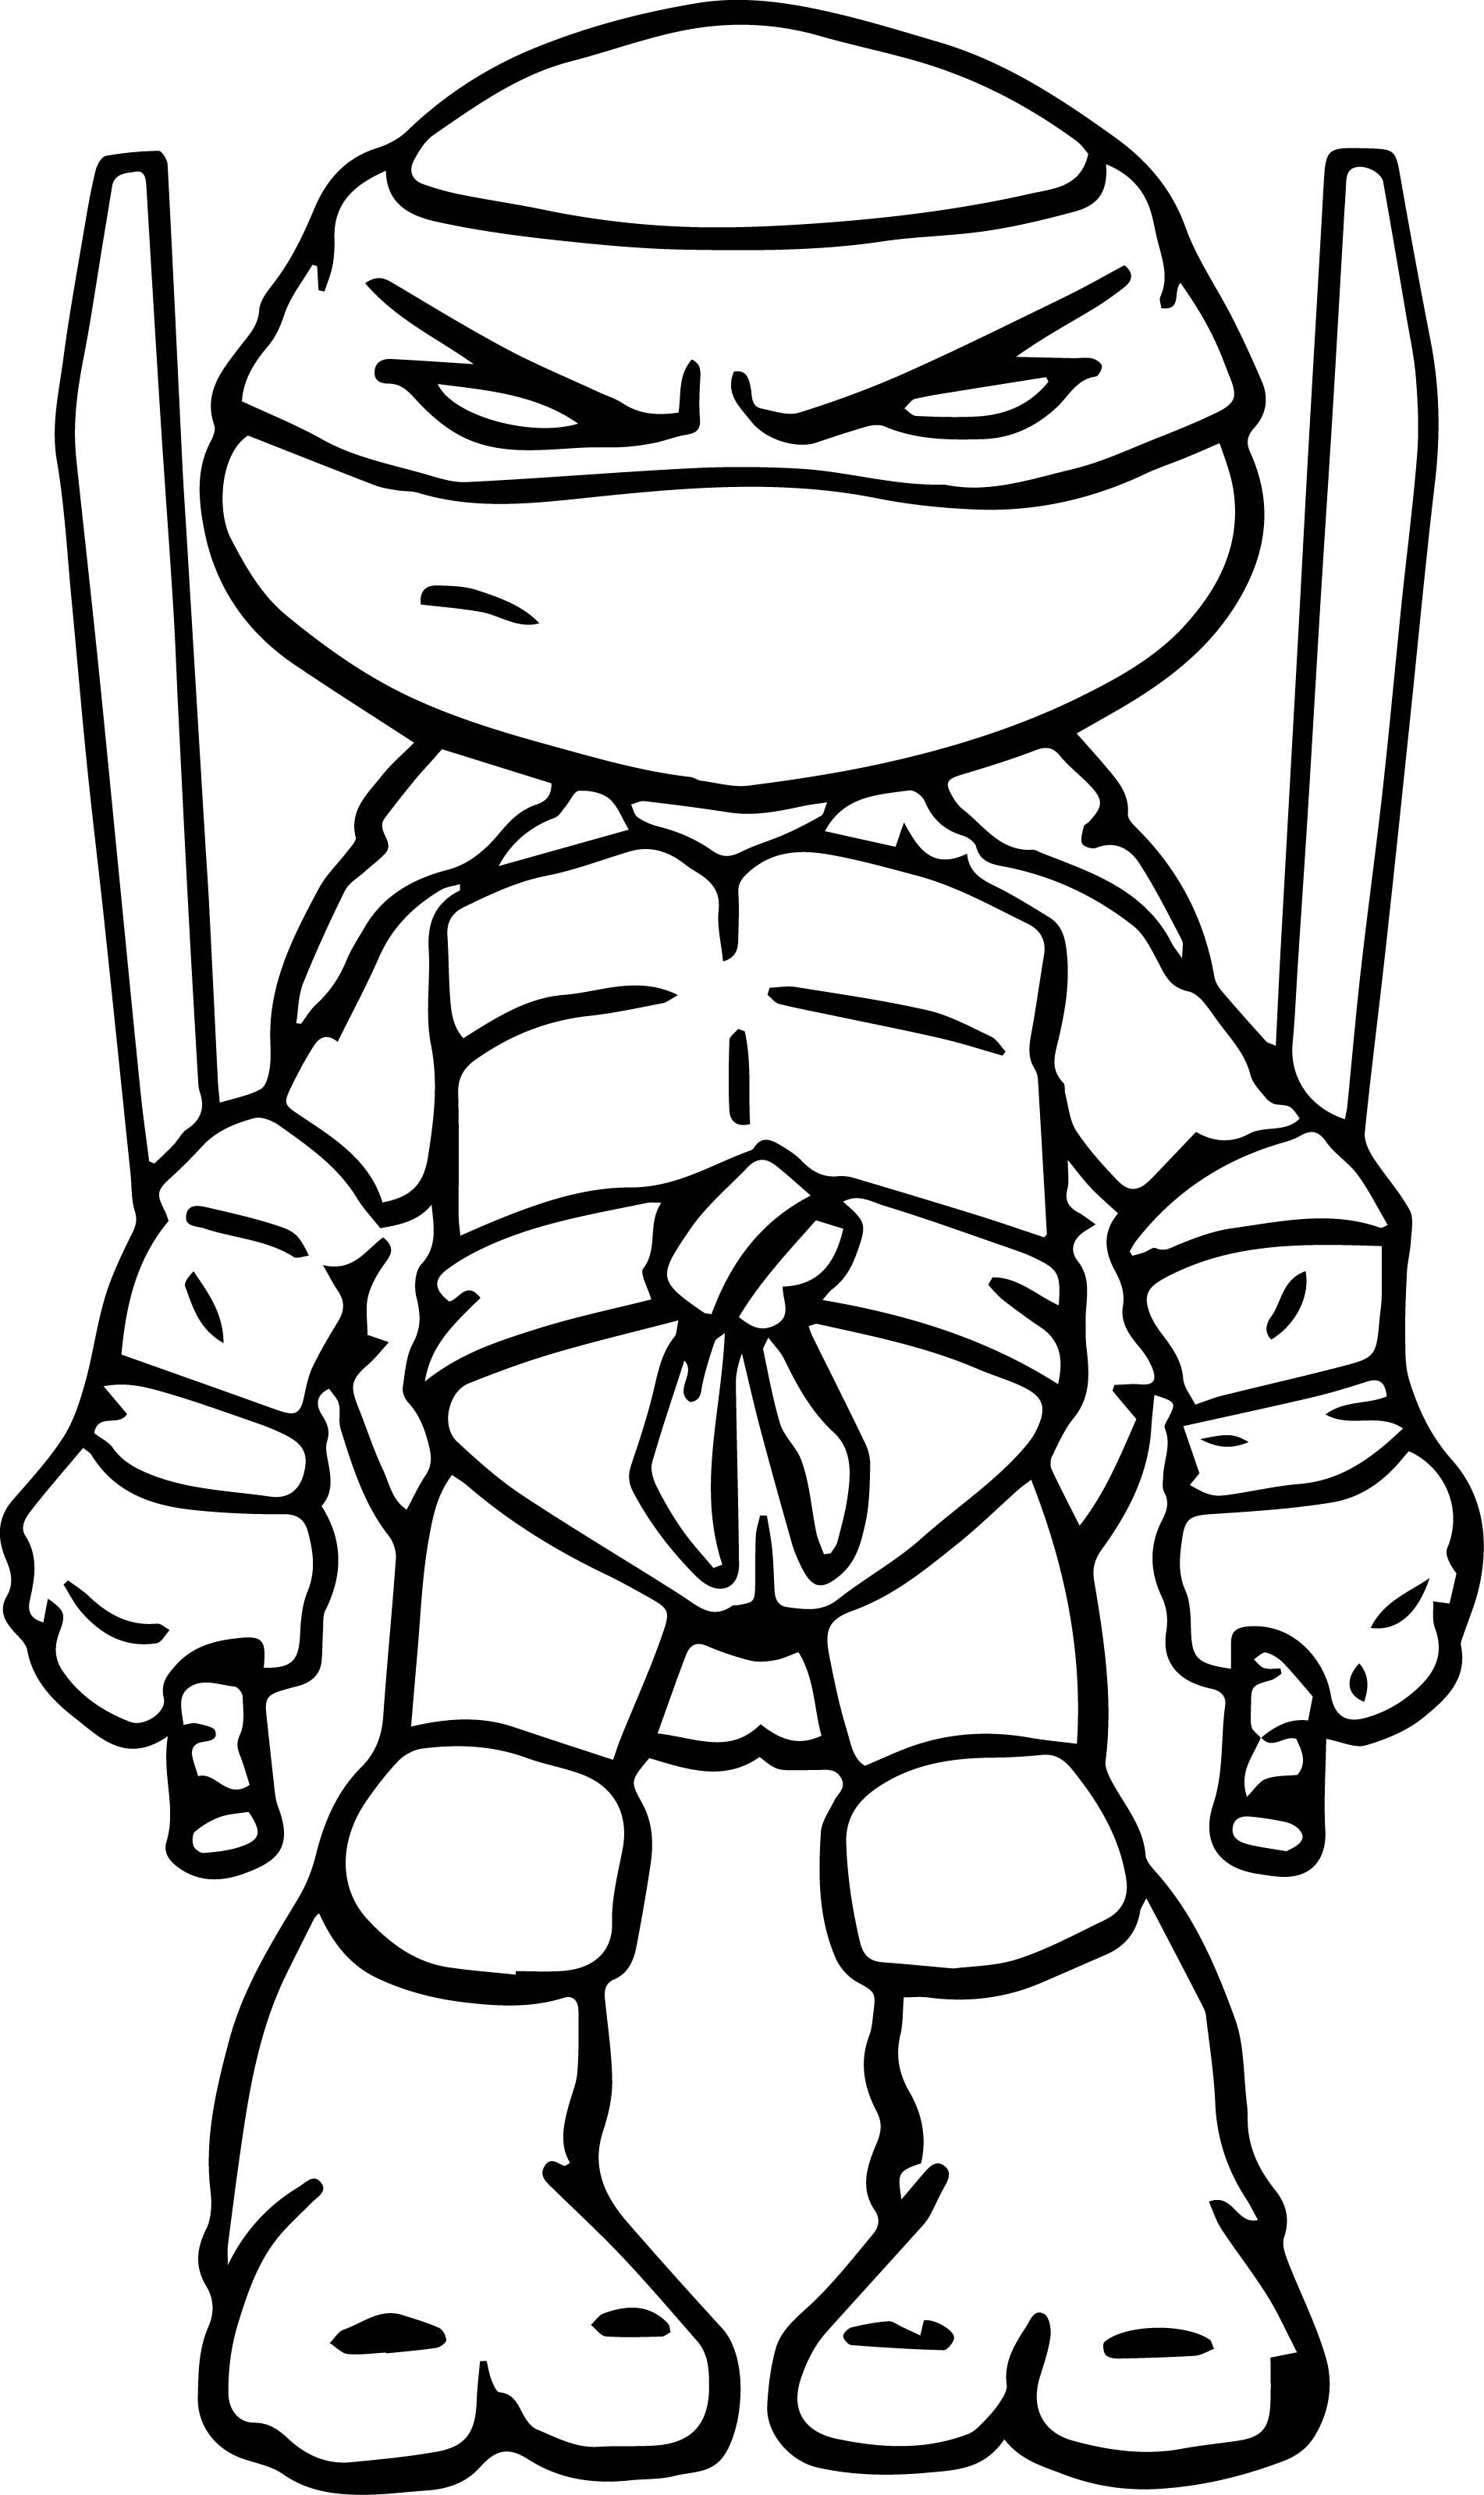 Ninja Turtles Art Coloring Page Ninja Turtle Coloring Pages Turtle Coloring Pages Cartoon Coloring Pages